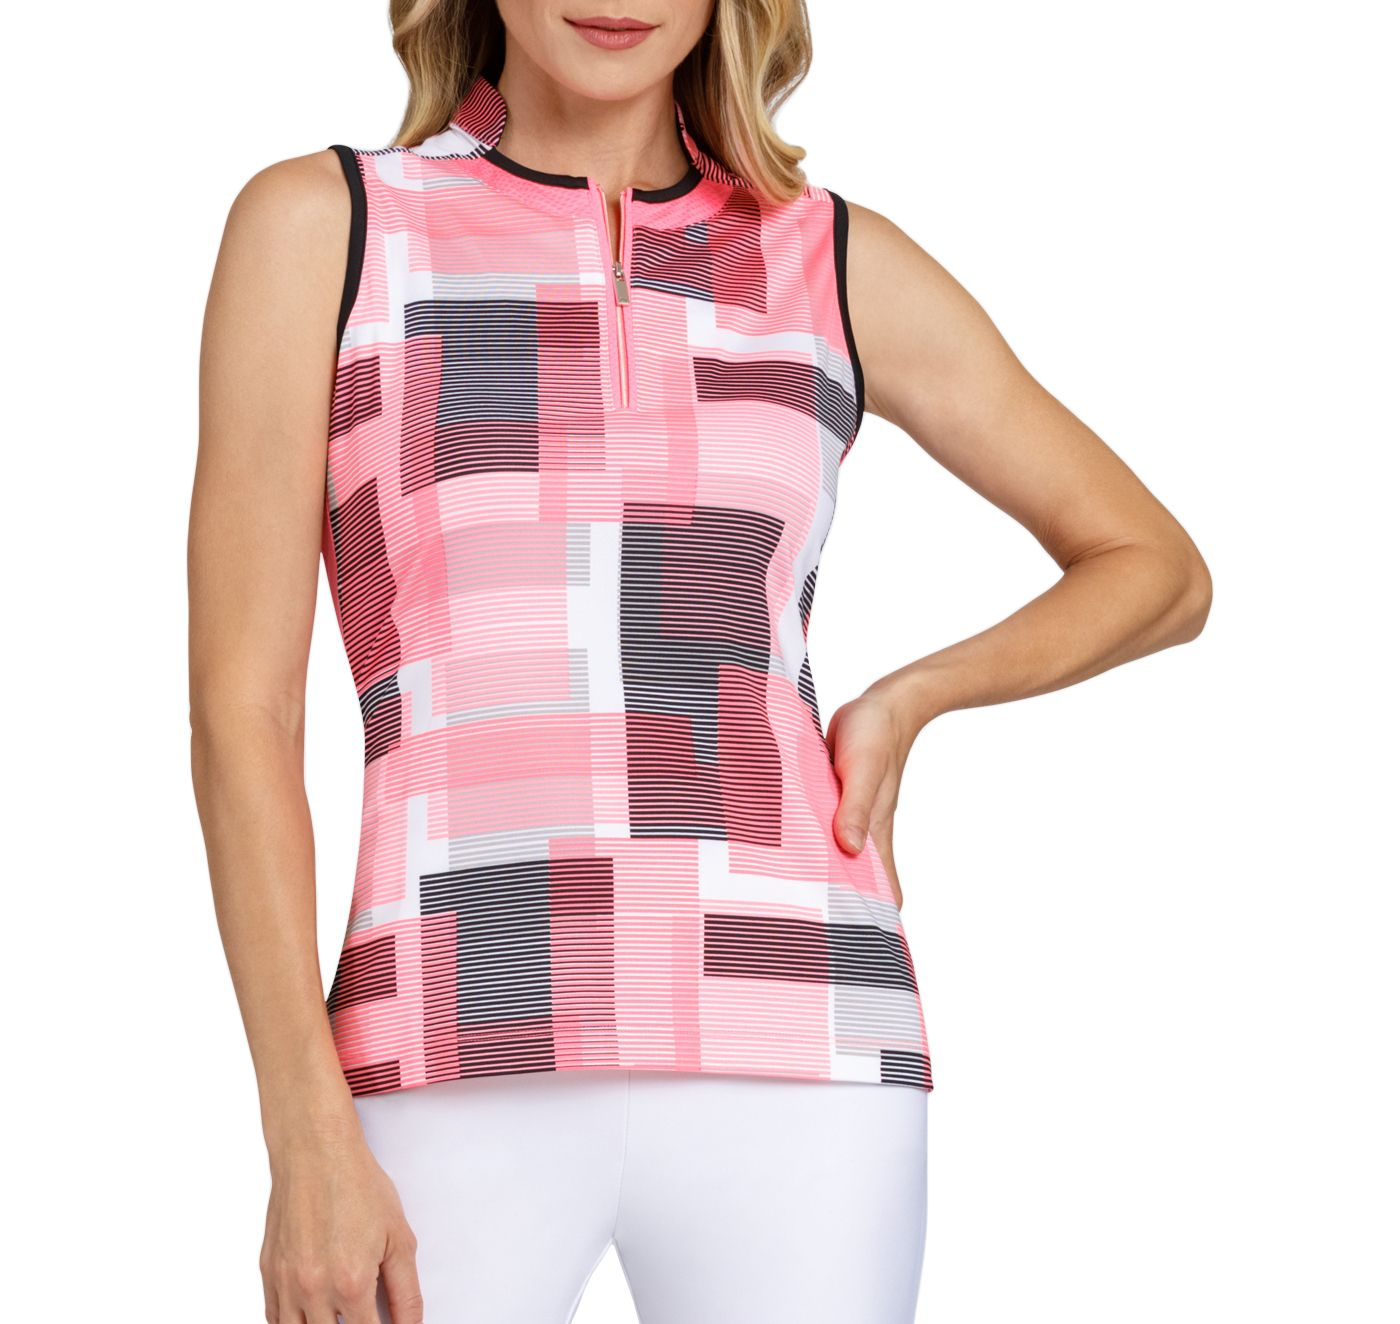 Tail Women's Sleeveless Novelty Collar Golf Polo